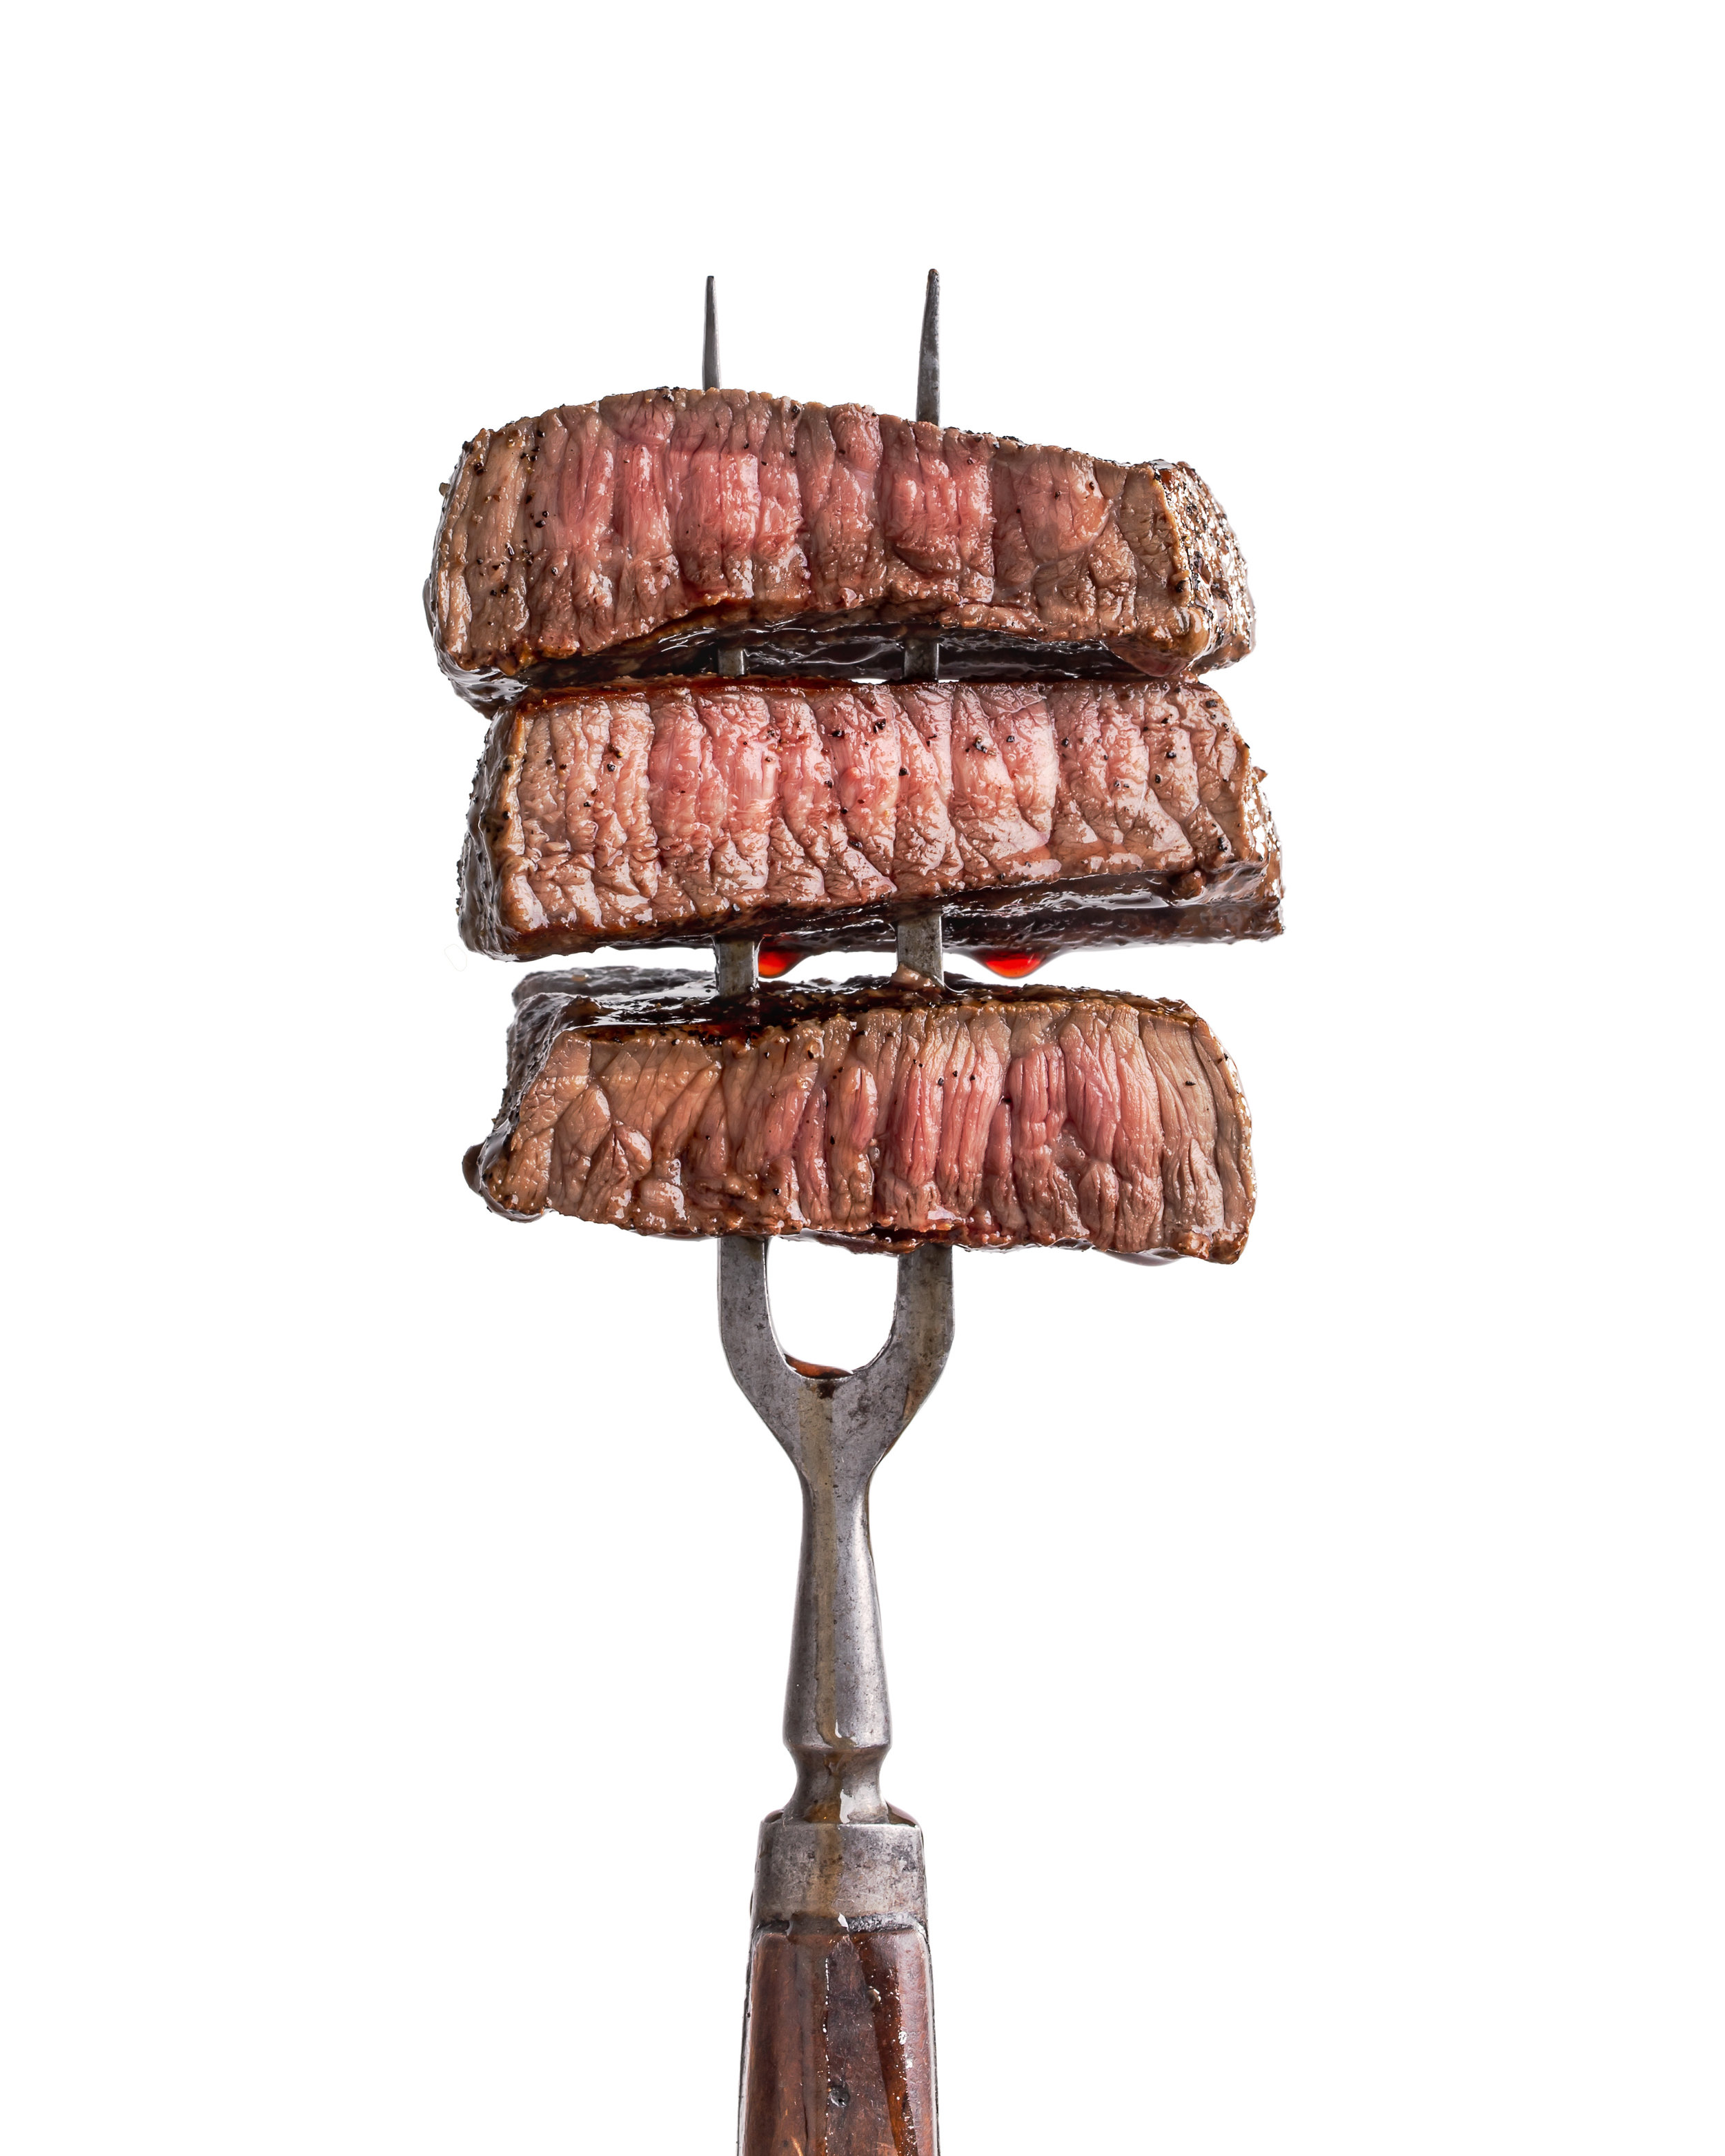 Cuts available - limited availability on occasion:Ground beefRoasts - eye of round, shoulderFilet mignonSteaks - skirt, ribeye, sirloin, flankSoup bonesStew meat (kabob meat)LiverBrisketOther specialty cuts available upon request